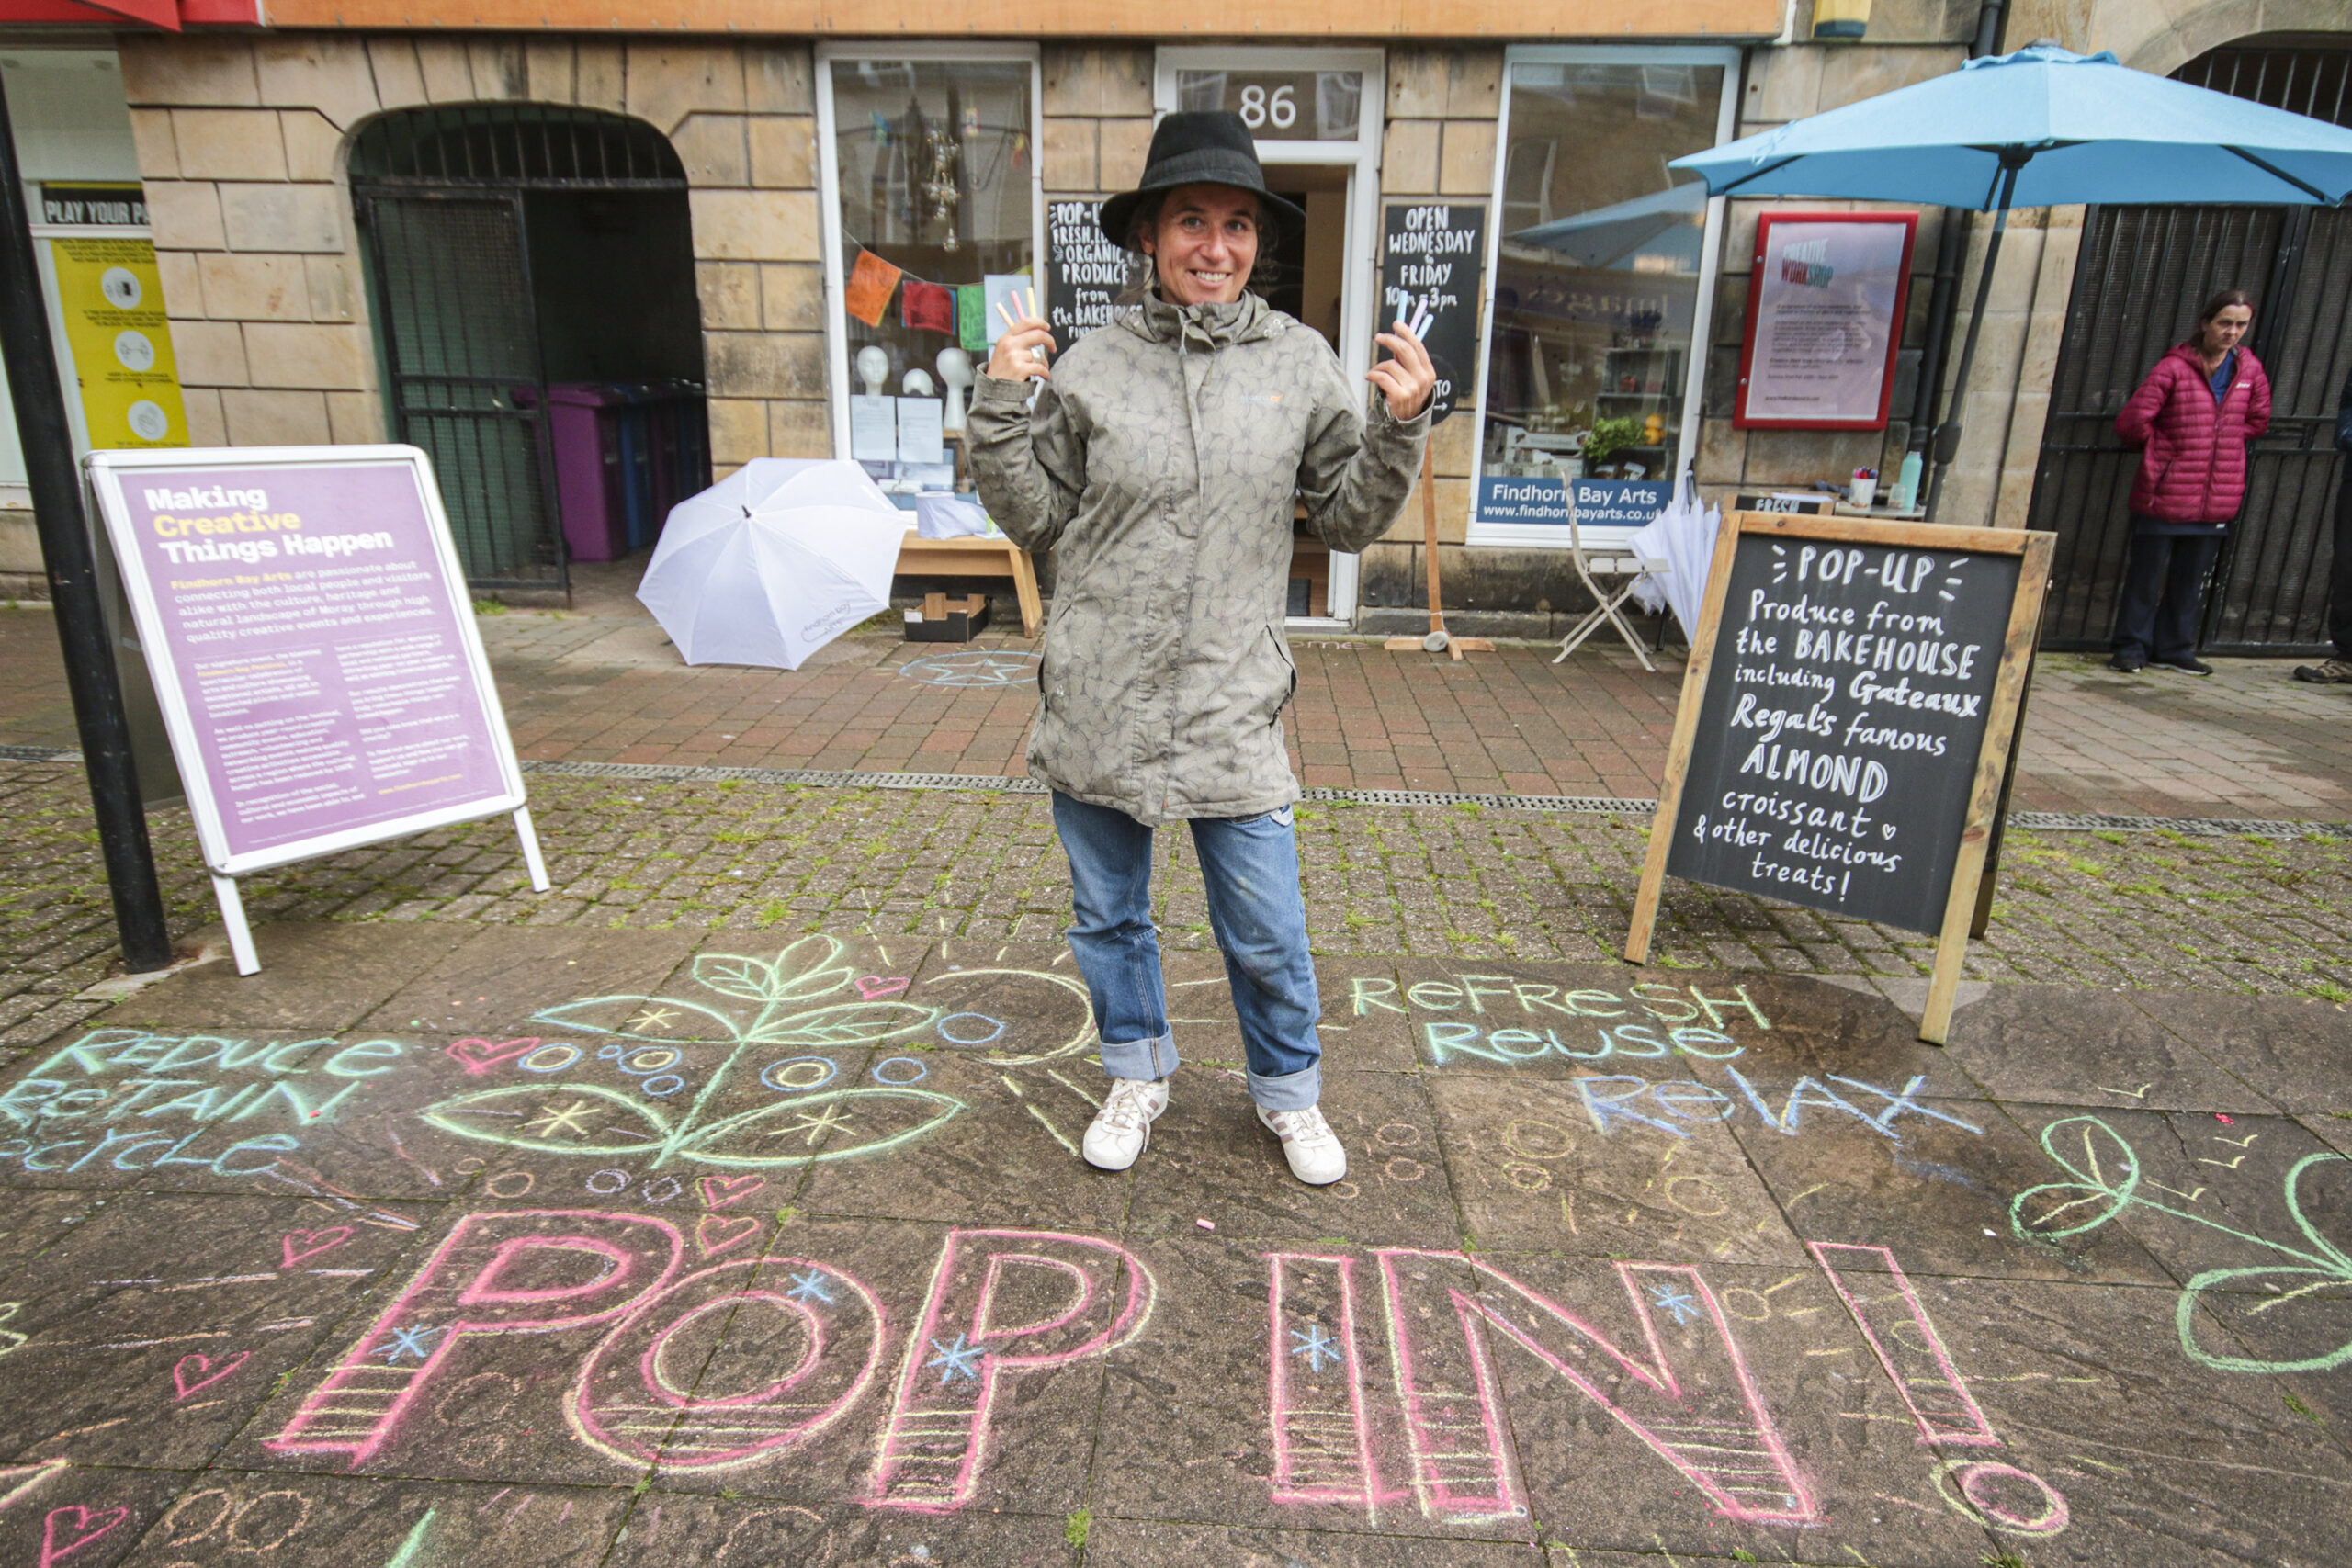 Artist Rosie Balyuzi puts her mark on the street in the town square outside 86 High Street. Pic: Marc Hindley